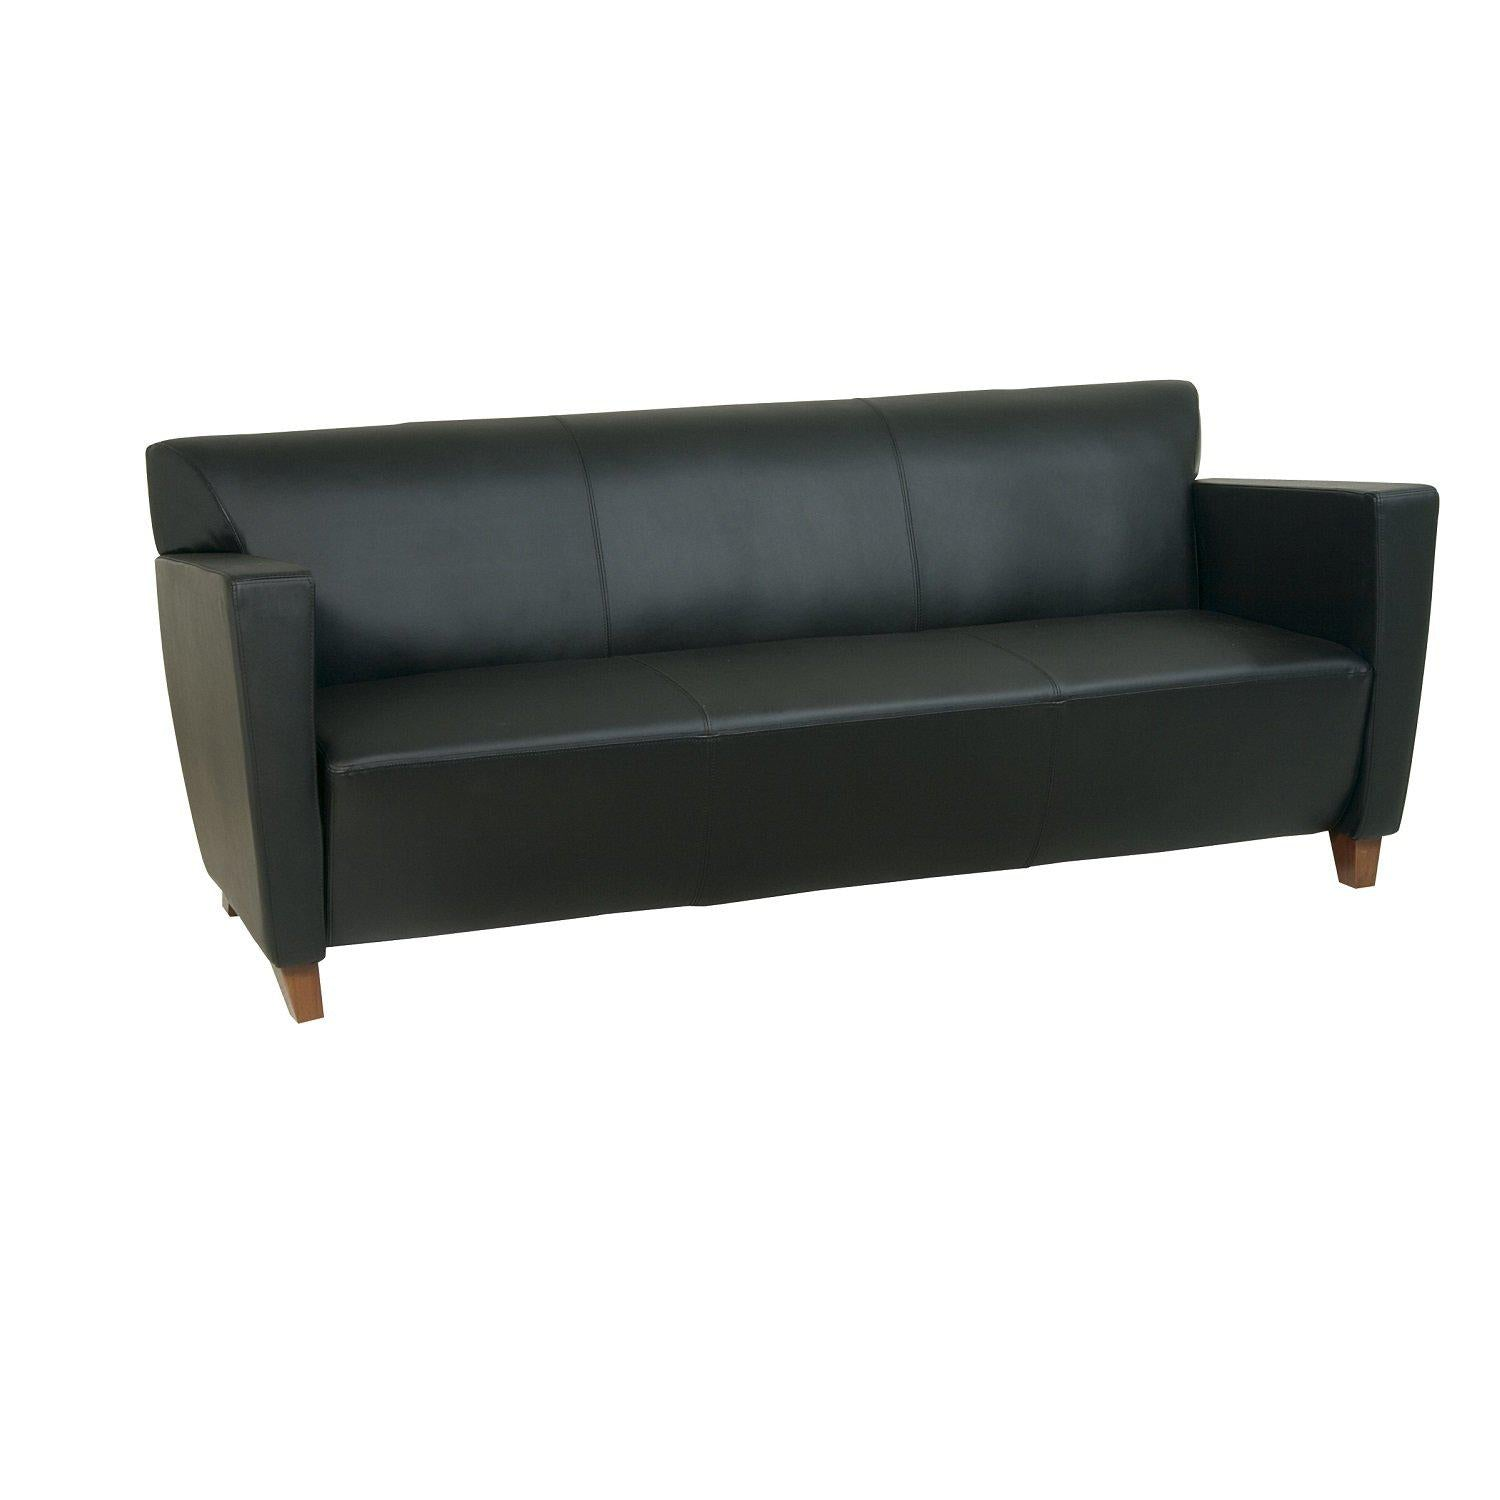 Black Bonded Leather Sofa with Cherry Finish Legs